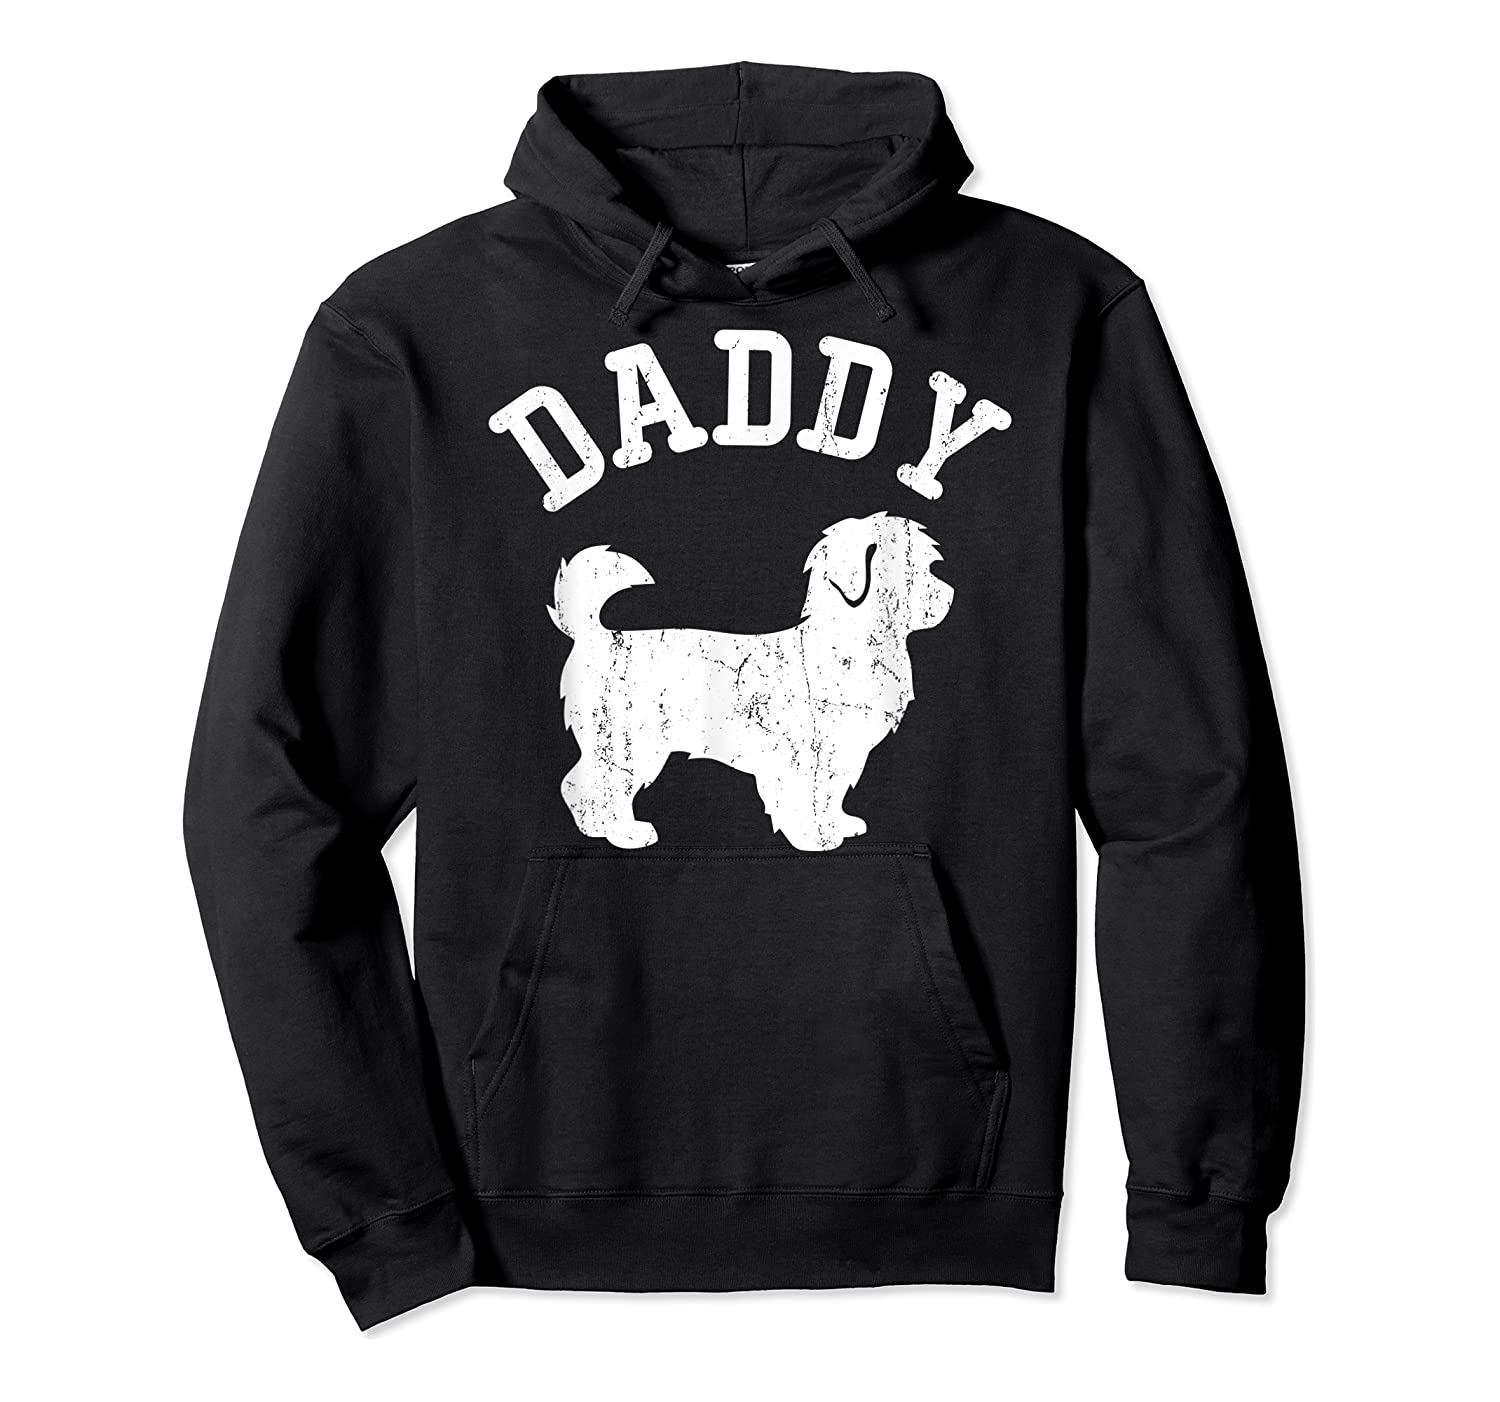 Daddy Maltipoo Vintage Gift Ideas For Dad Shirts Unisex Pullover Hoodie